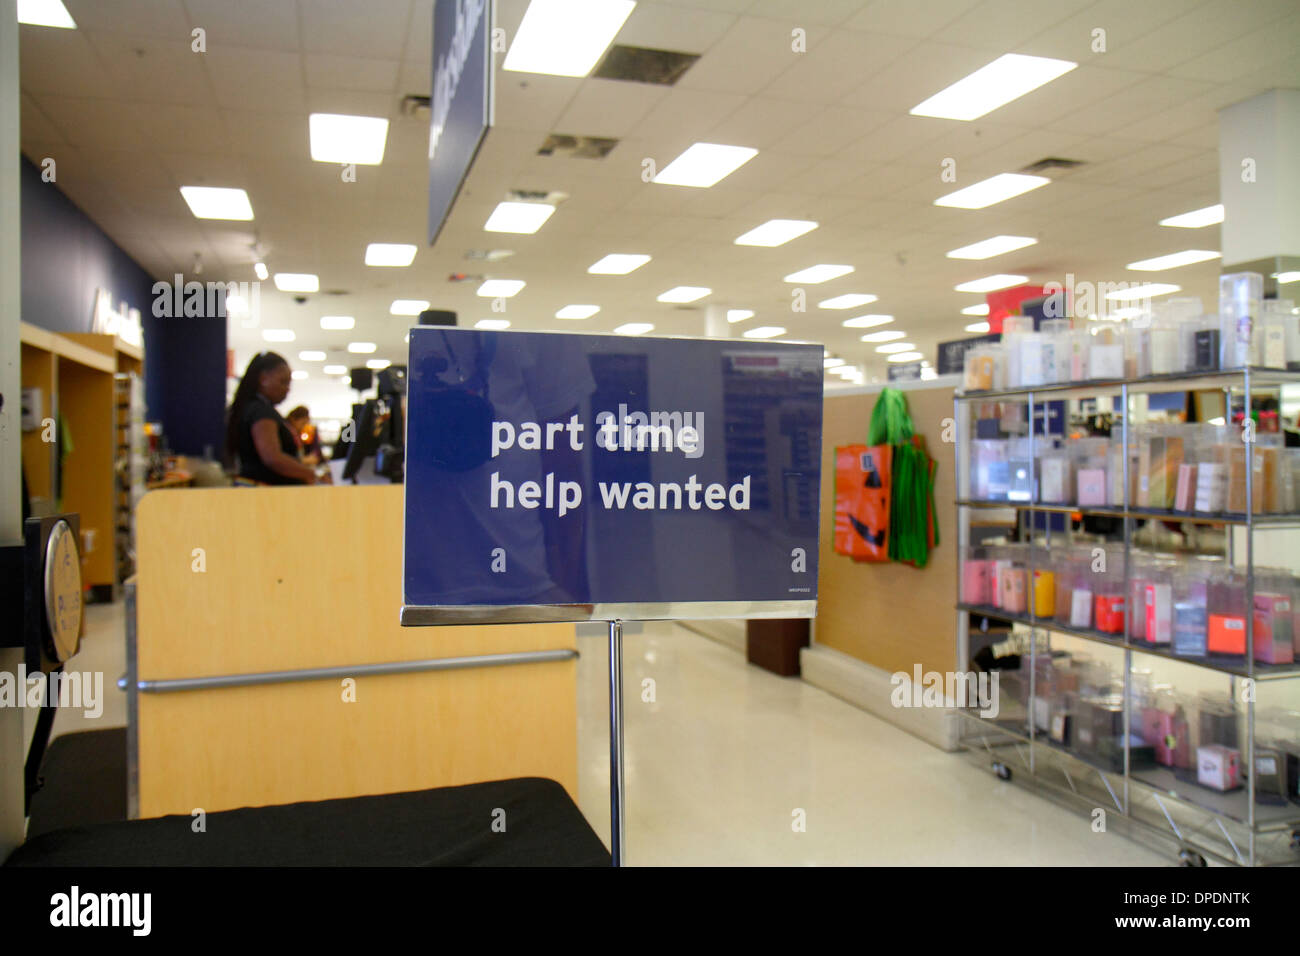 Miami Florida Marshalls Discount Department Store Shopping Part Time Help Wanted Sign Retail Employment